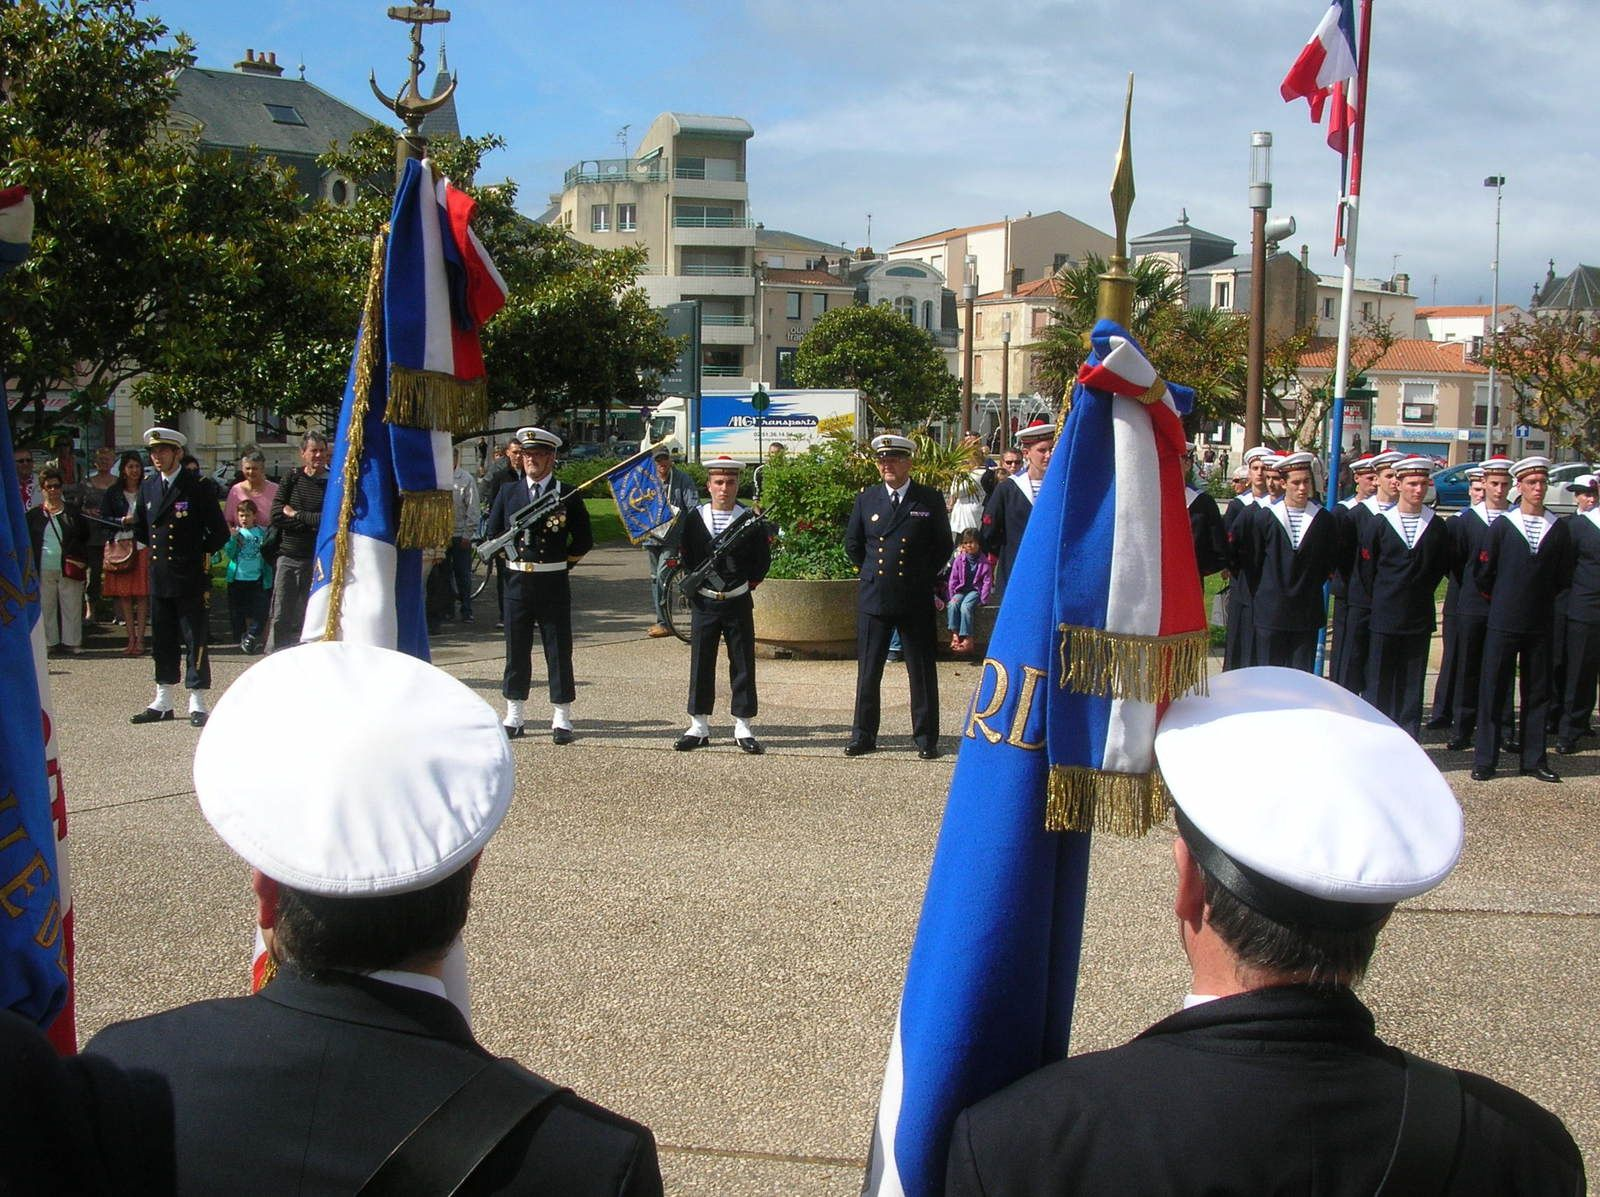 Remise des insignes et diplômes à la PMM des Sables 30 mai 2015 d'Olonne